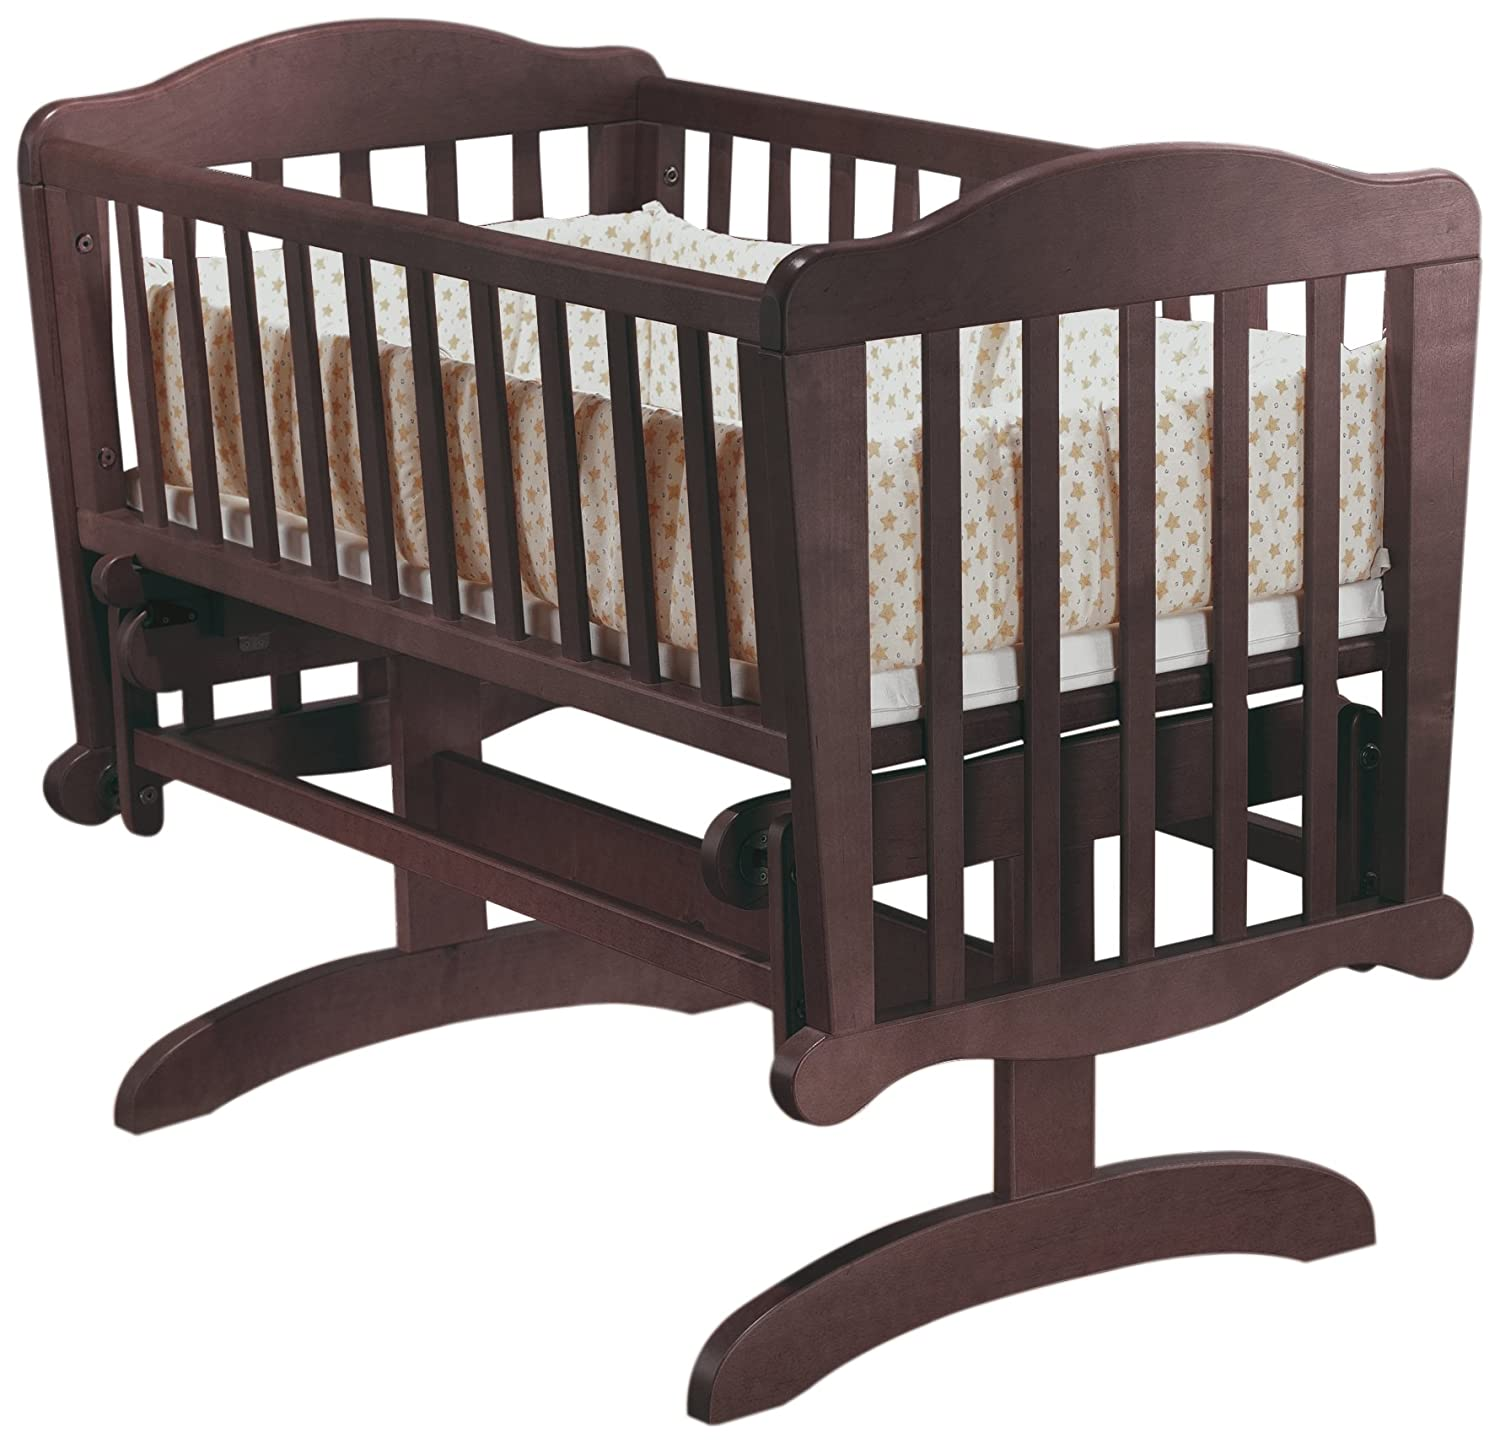 Sorelle Dondola Gliding Cradle Cherry Discontinued By Manufacturer